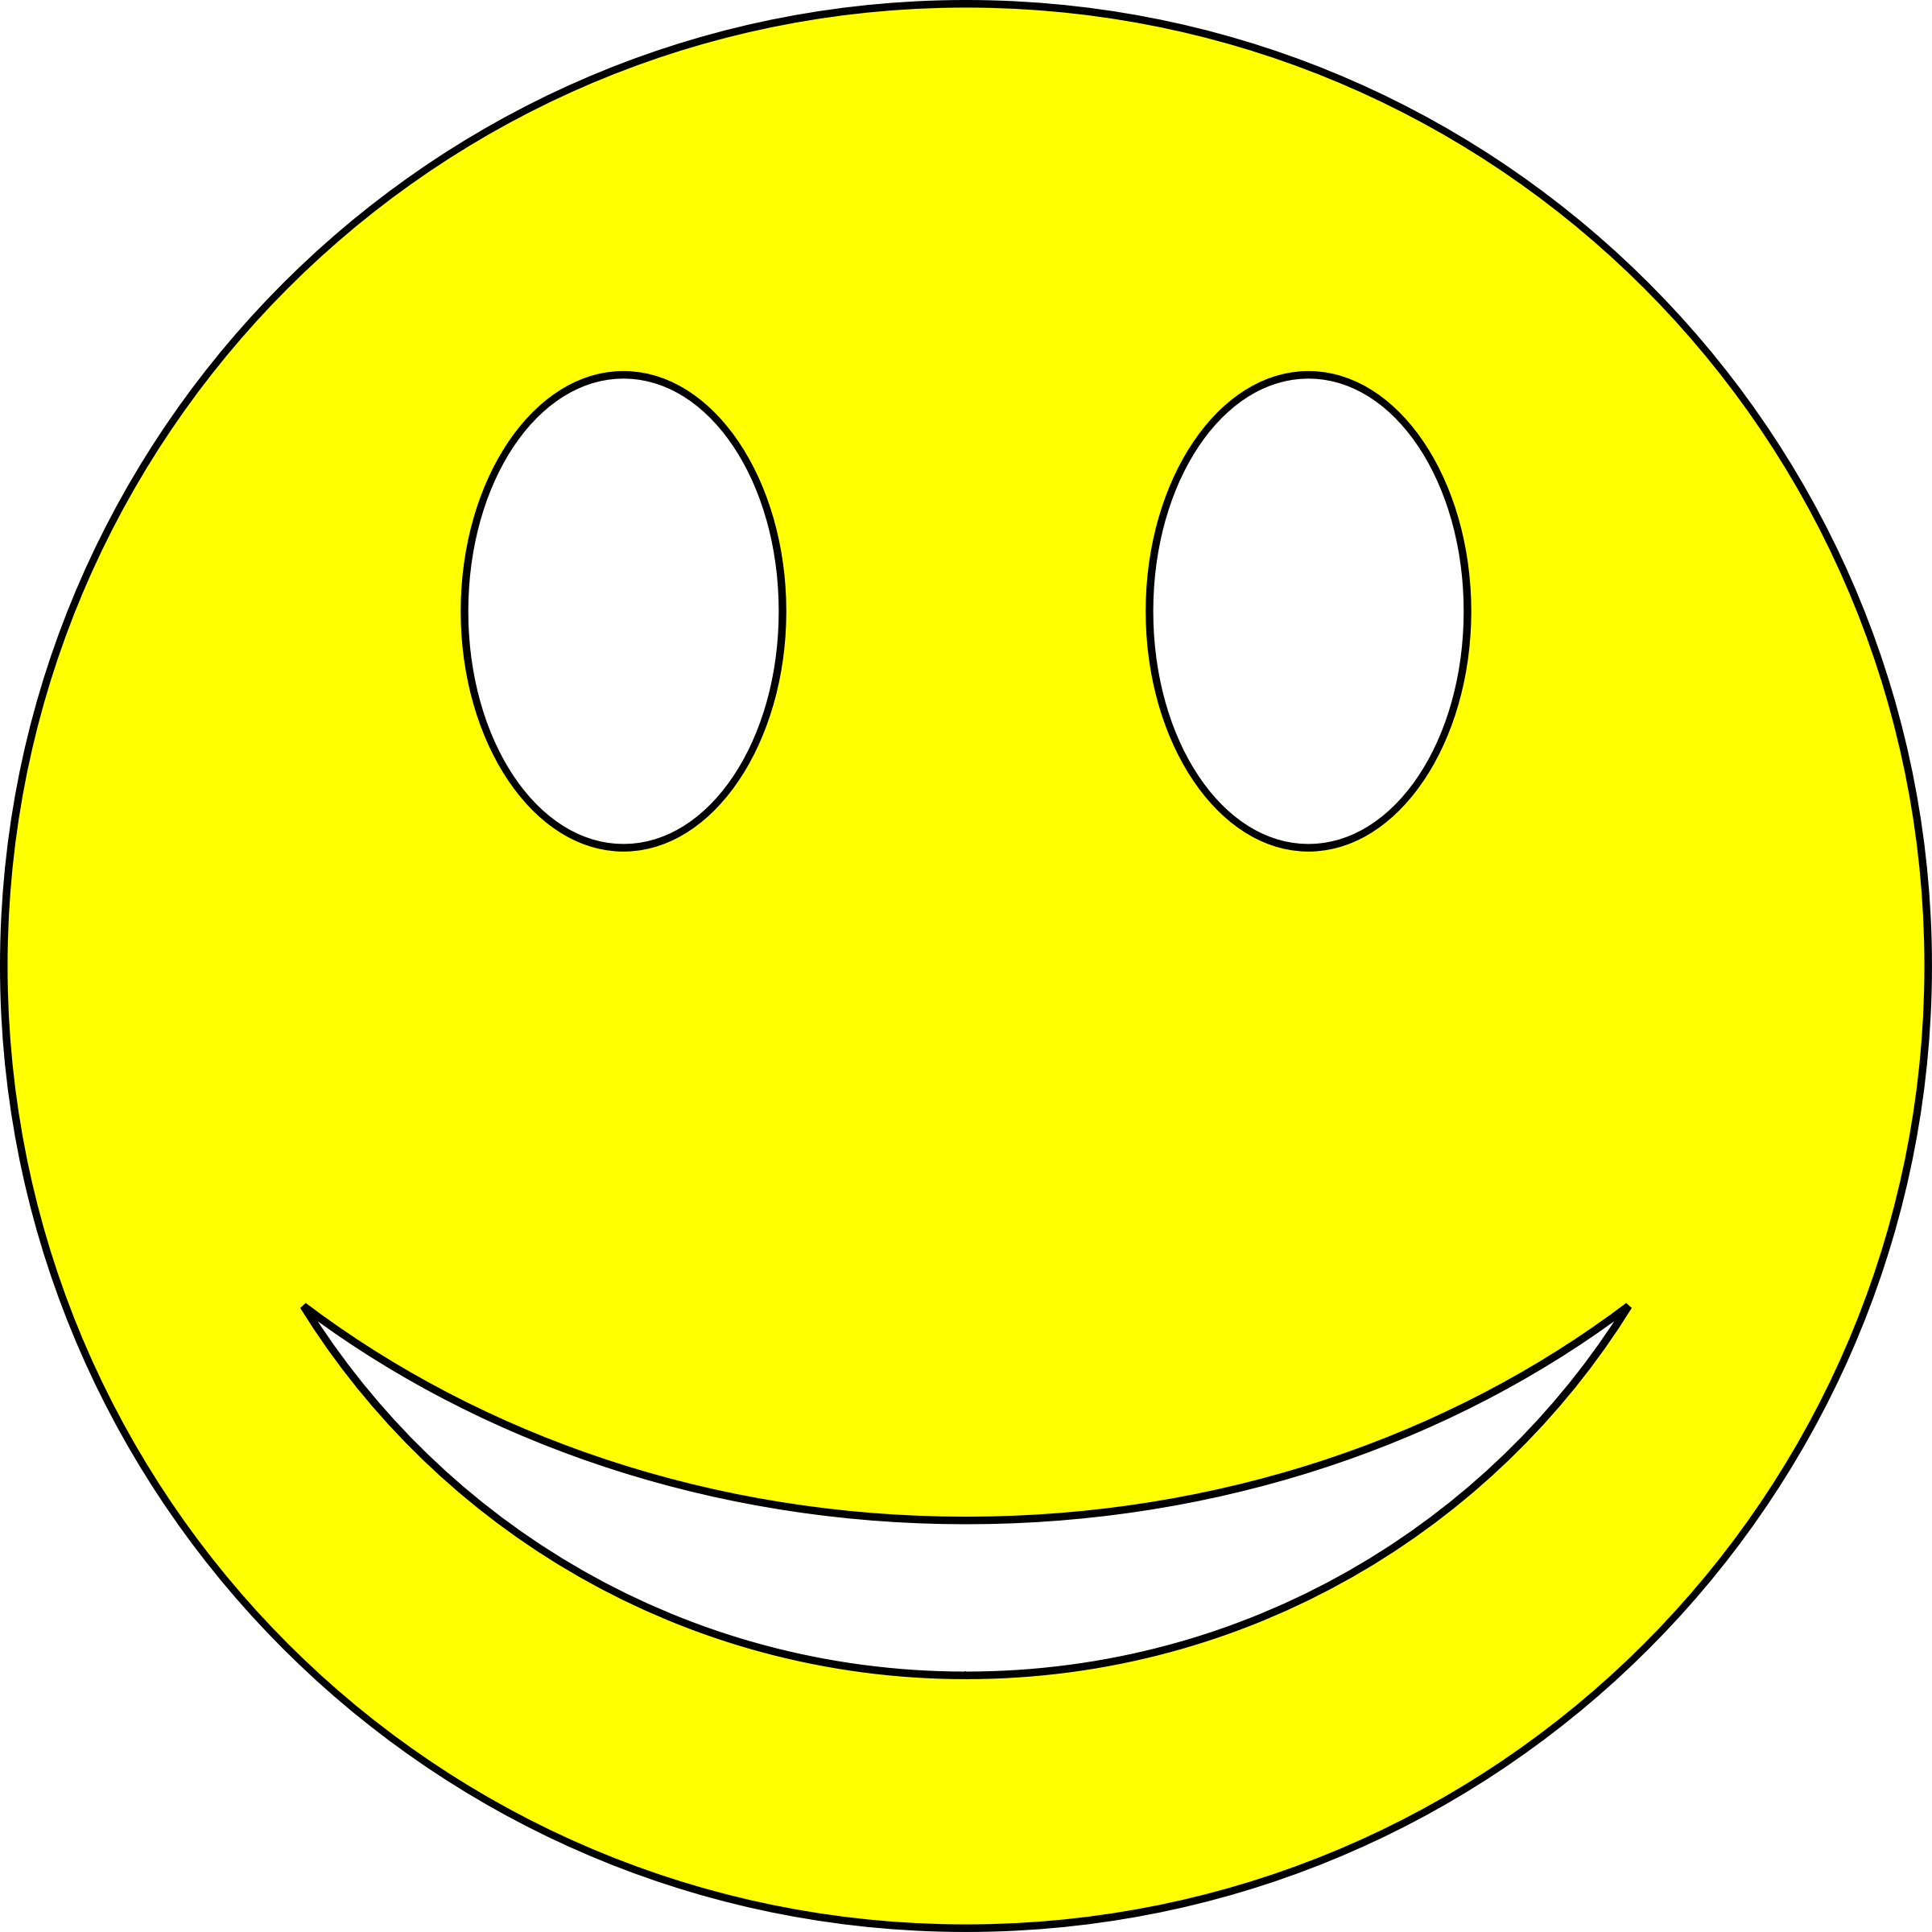 Smiley clipart yellow Yellow Smiley Smiley Clipart Yellow